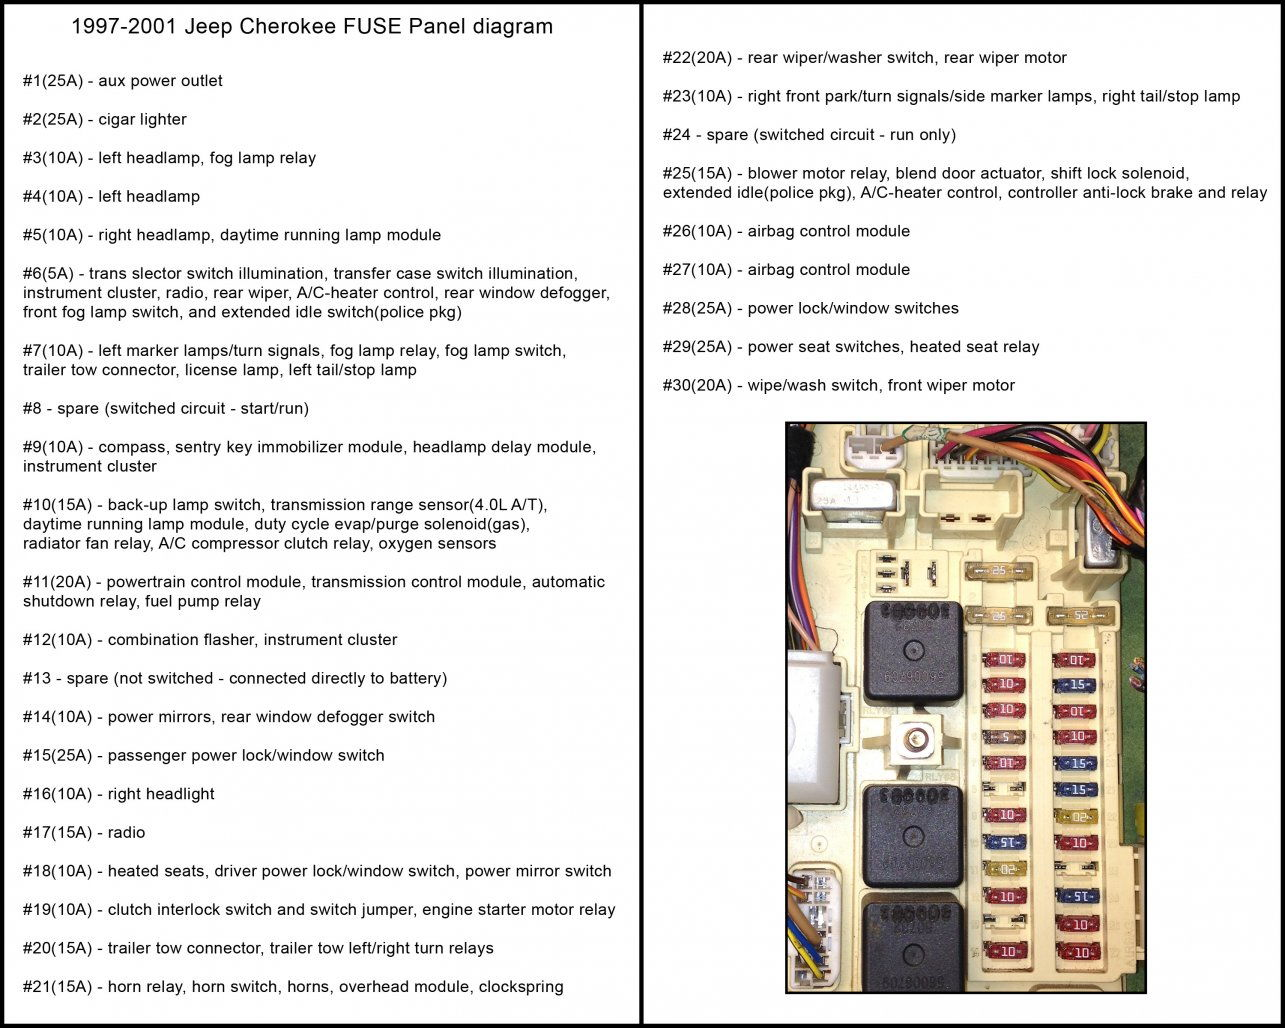 Jeep Zj Fuse Diagram - Diagram Schematics  Jeep Grand Cherokee Fuse Box Diagram on